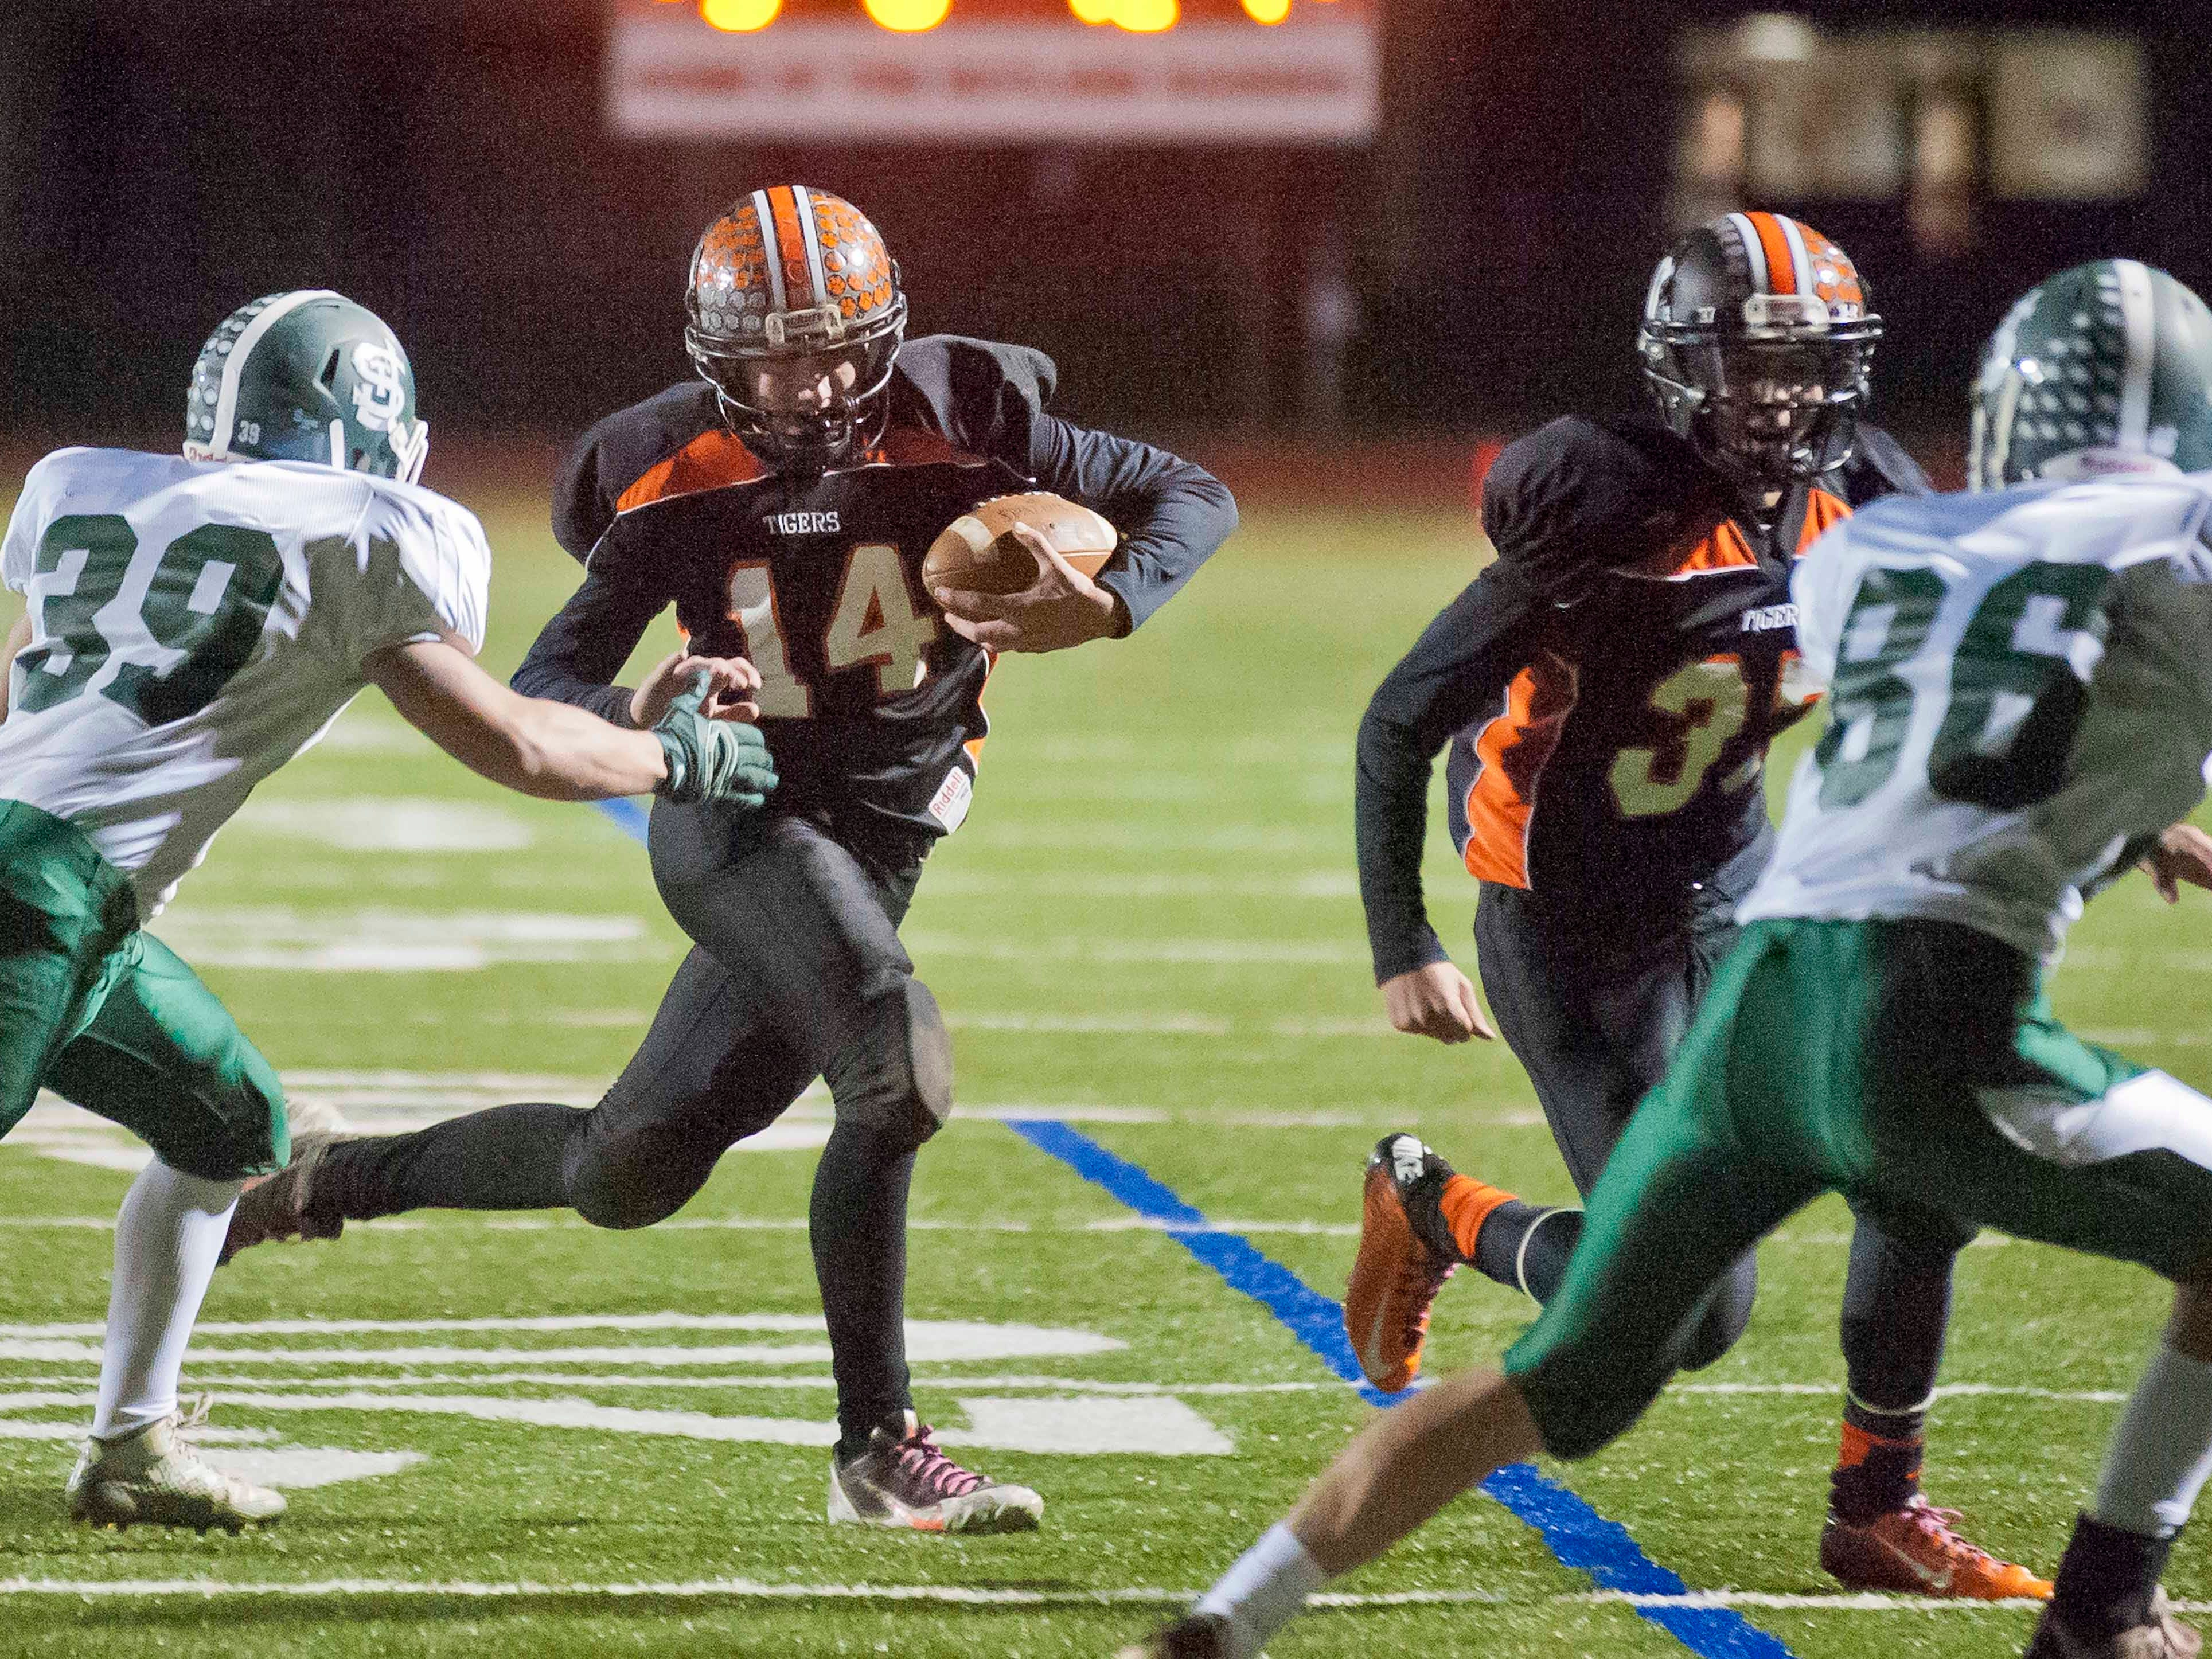 Middlebury's Austin Robinson (14) avoids St. Johnsbury's Ryan Haff, left, on his way to scoring a touchdown in the Division I high school football championship game in Rutland last month. The win sealed the Tigers' second straight crown.